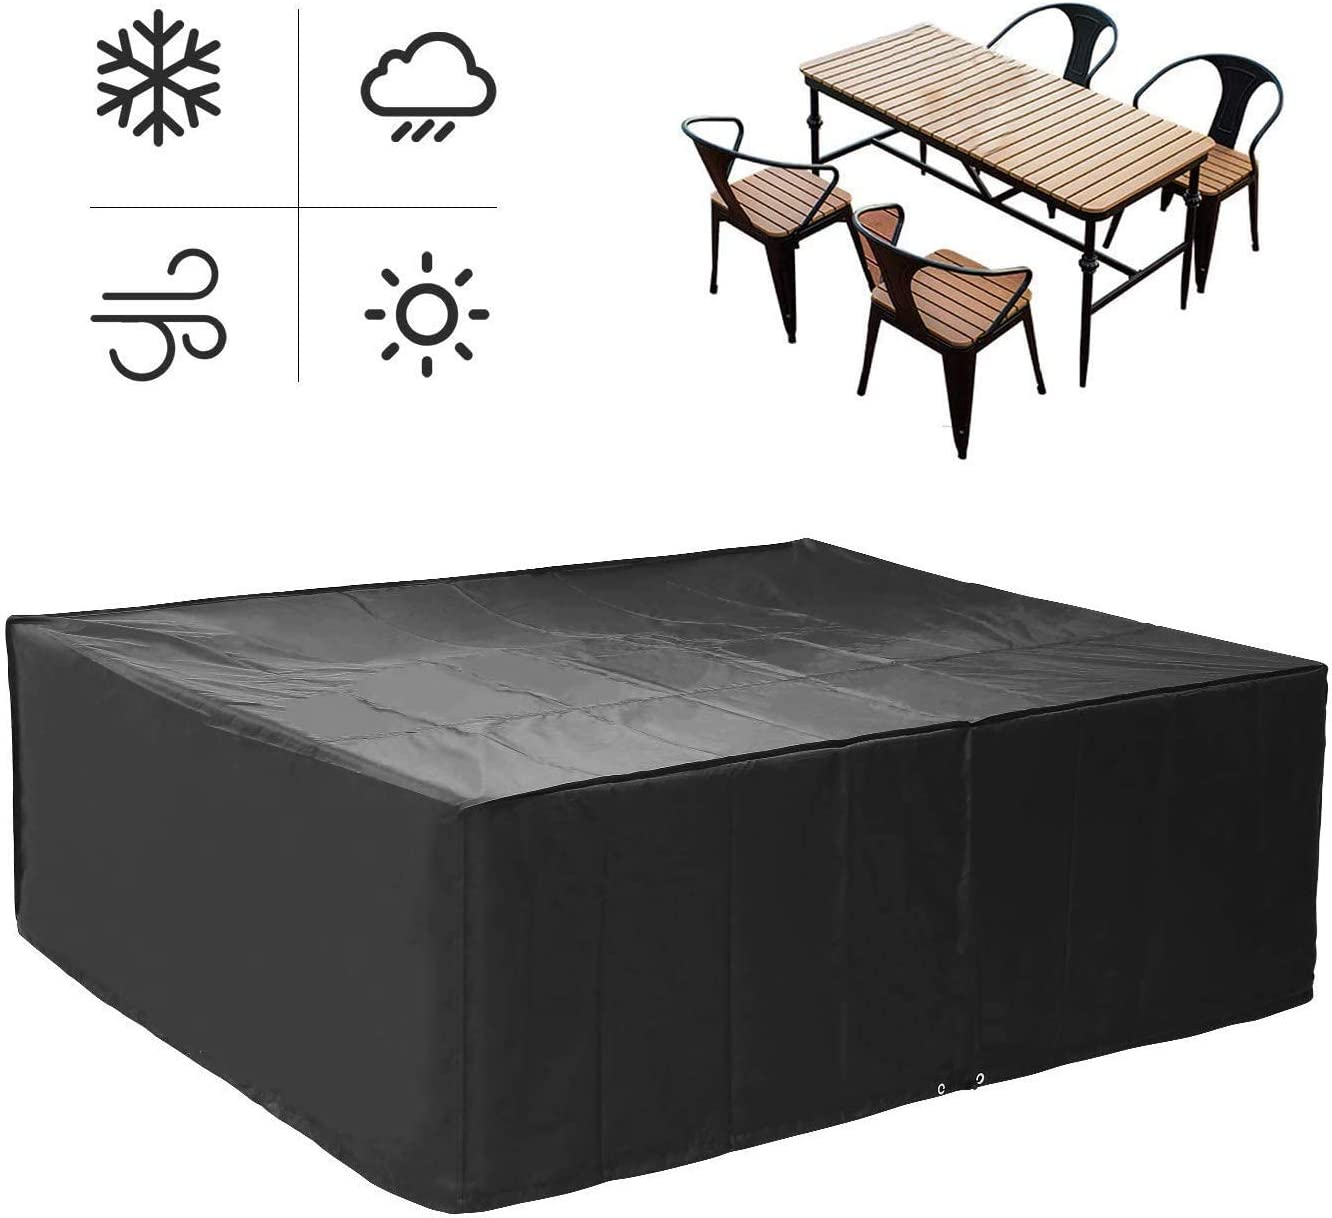 FIXKIT Rectangular Furniture Cover, Table and Chair Patio Cover Waterproof for Outdoor Garden Furniture Care Large 98 L79 W31.5 H